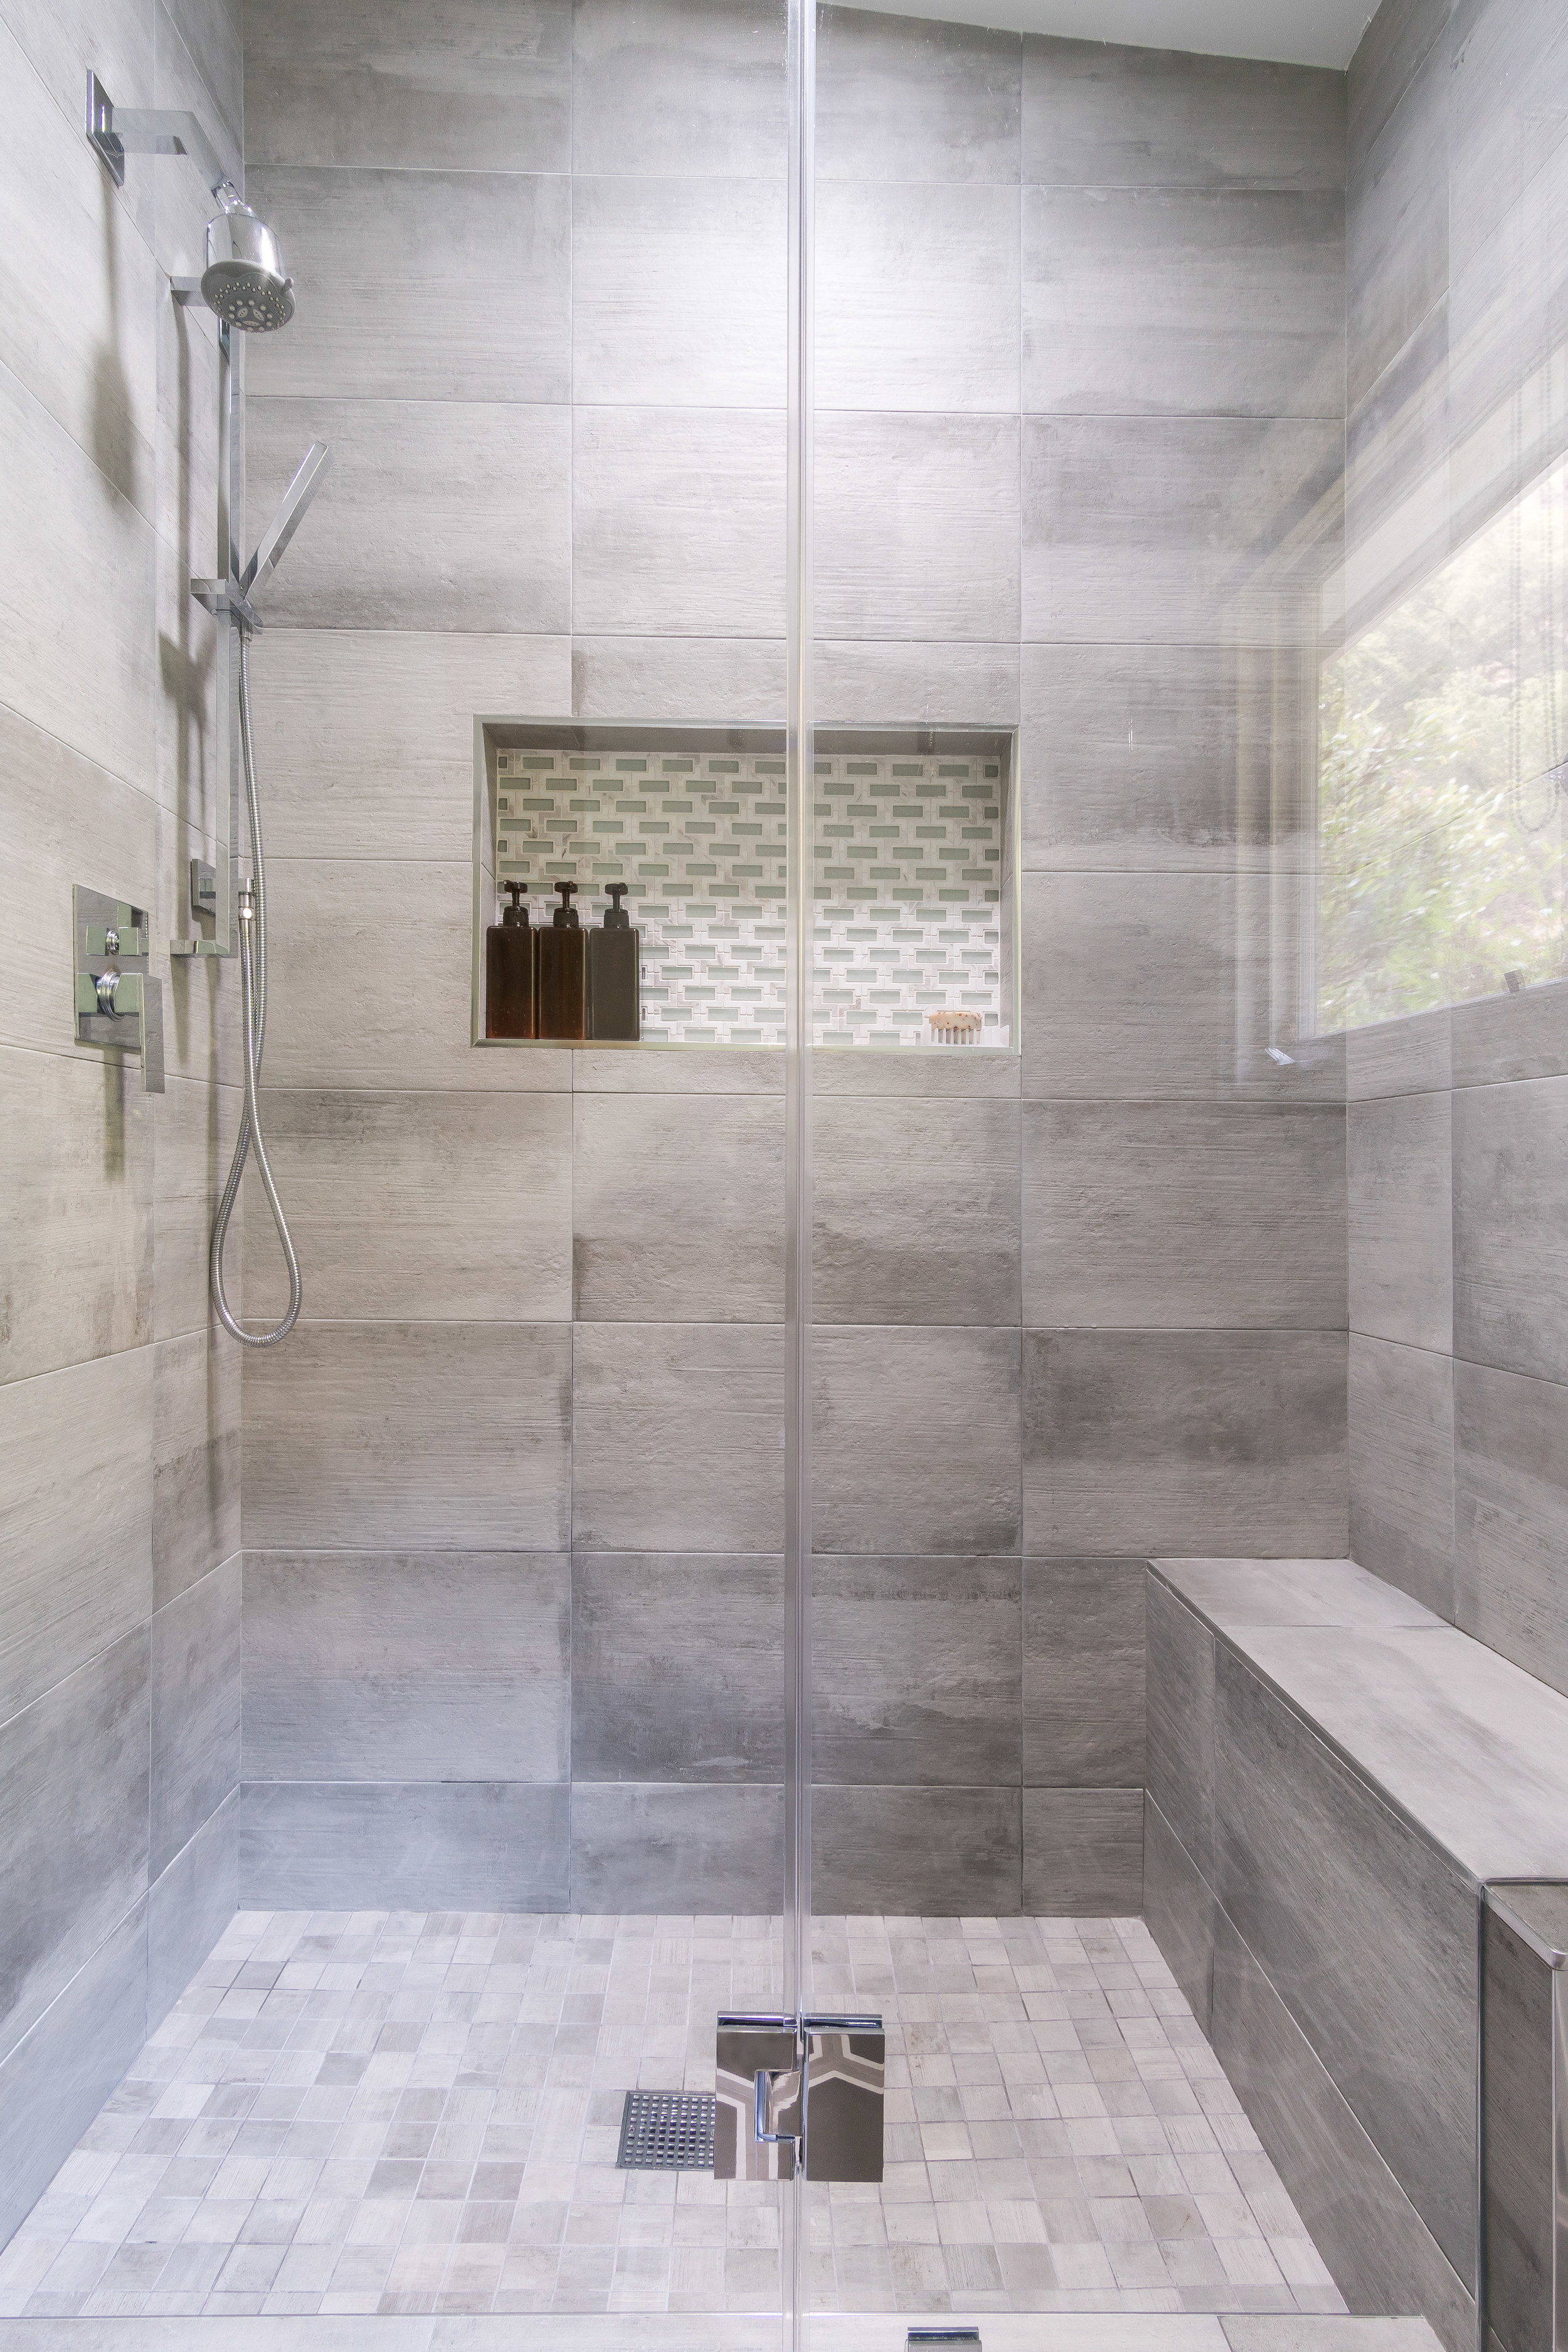 Delivered photo of the shower in this bathroom remodel ©Ryan Carr - Legacy Listing Photography - 2017